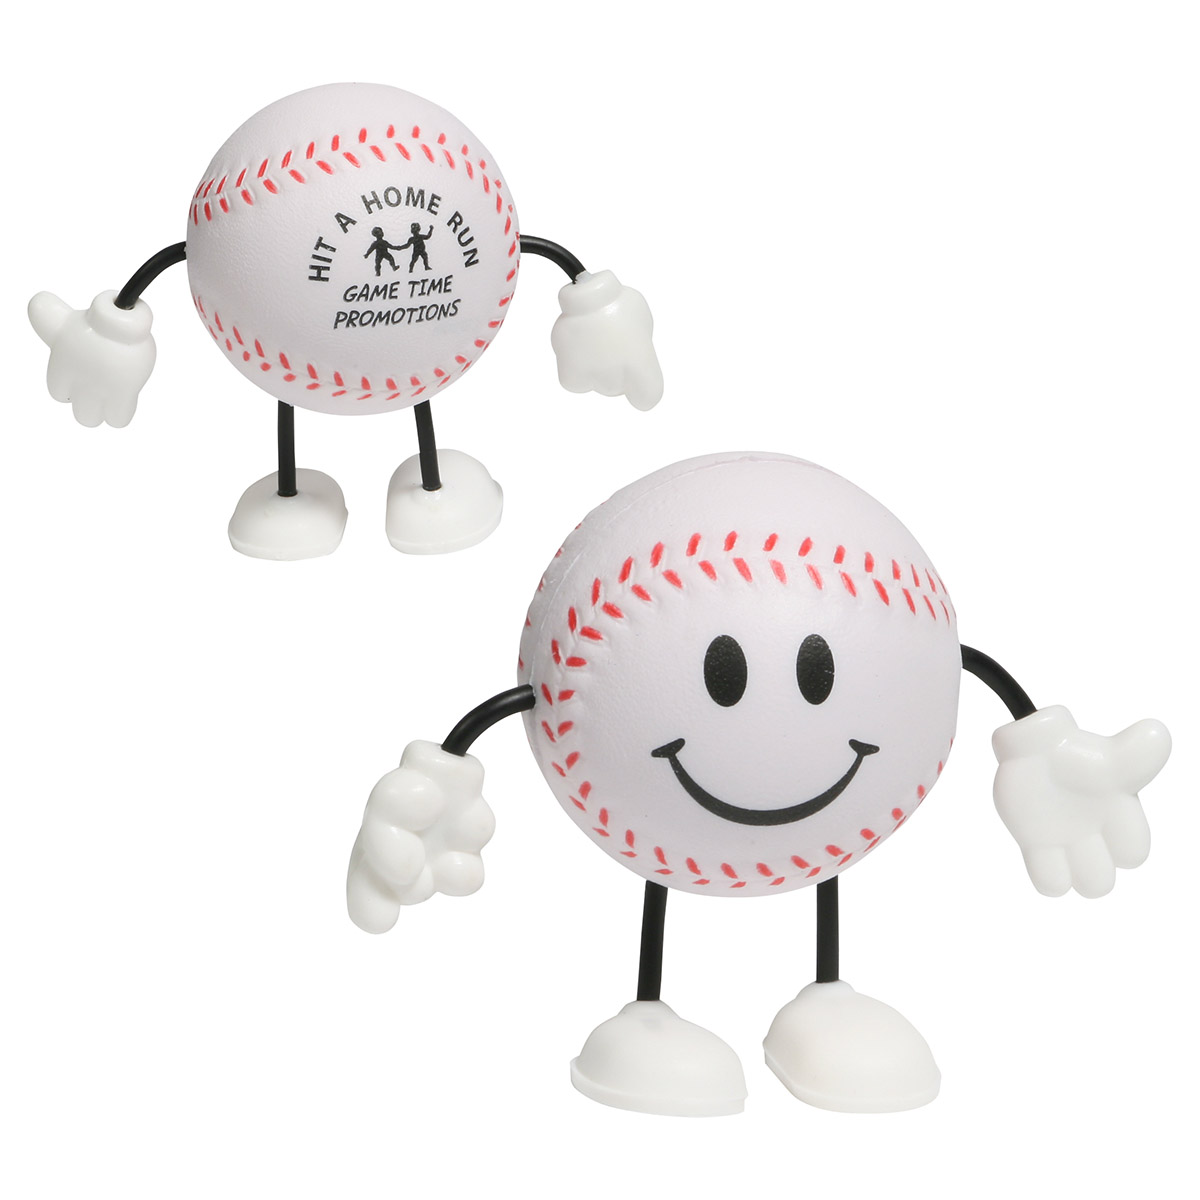 Baseball Stress Reliever Figure, LCH-BA01, 1 Colour Imprint